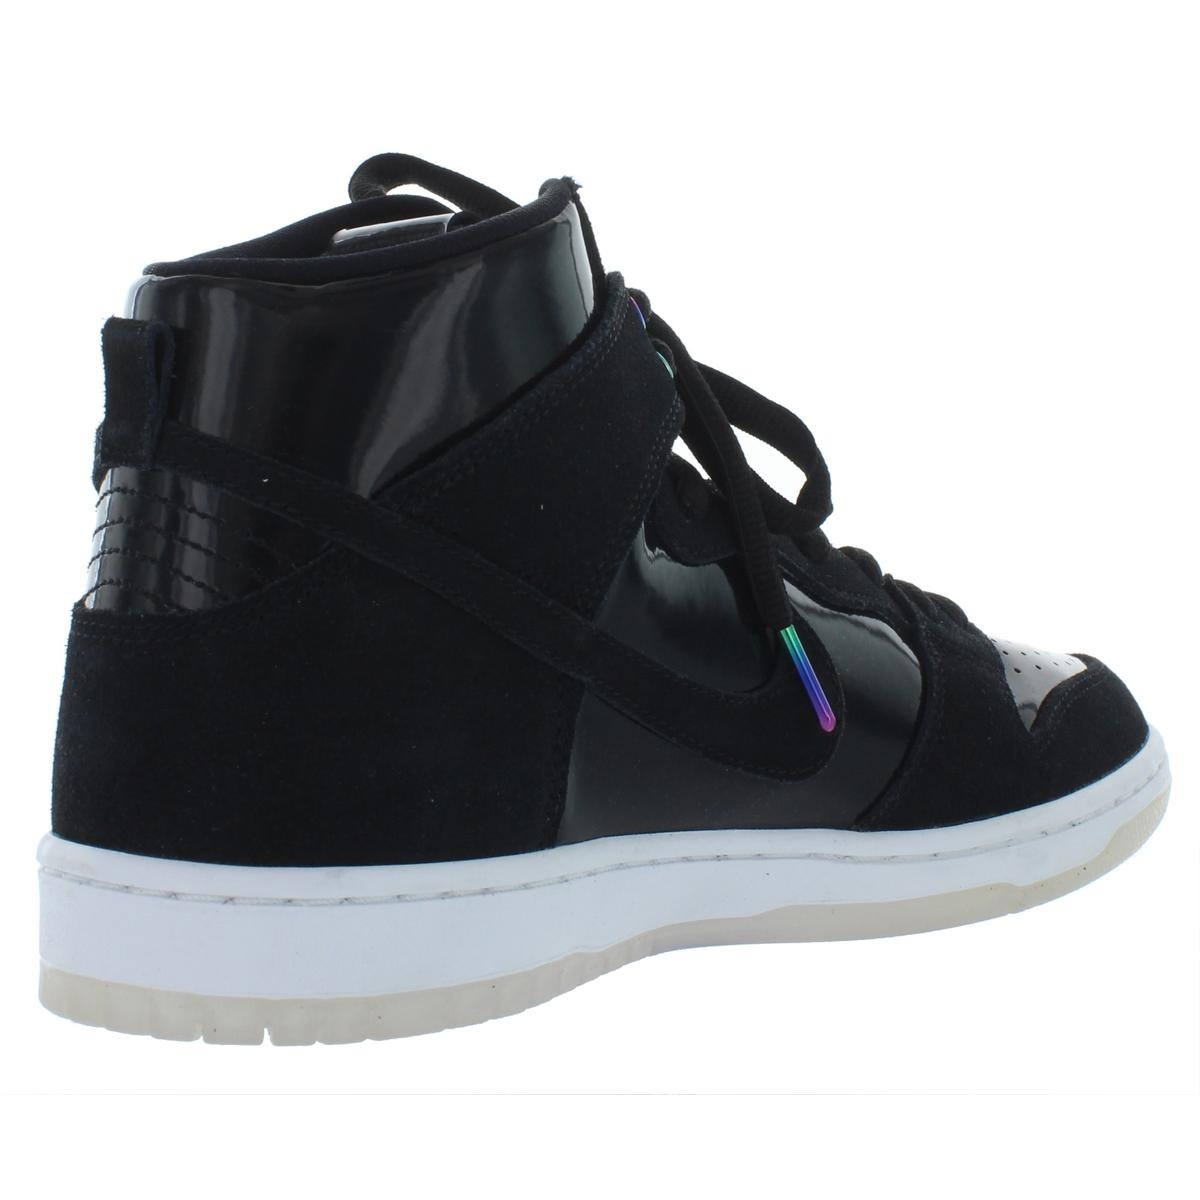 08c26c755d55 Nike Mens SB Zoom Dunk High Pro High Top Basketball Sneakers ...